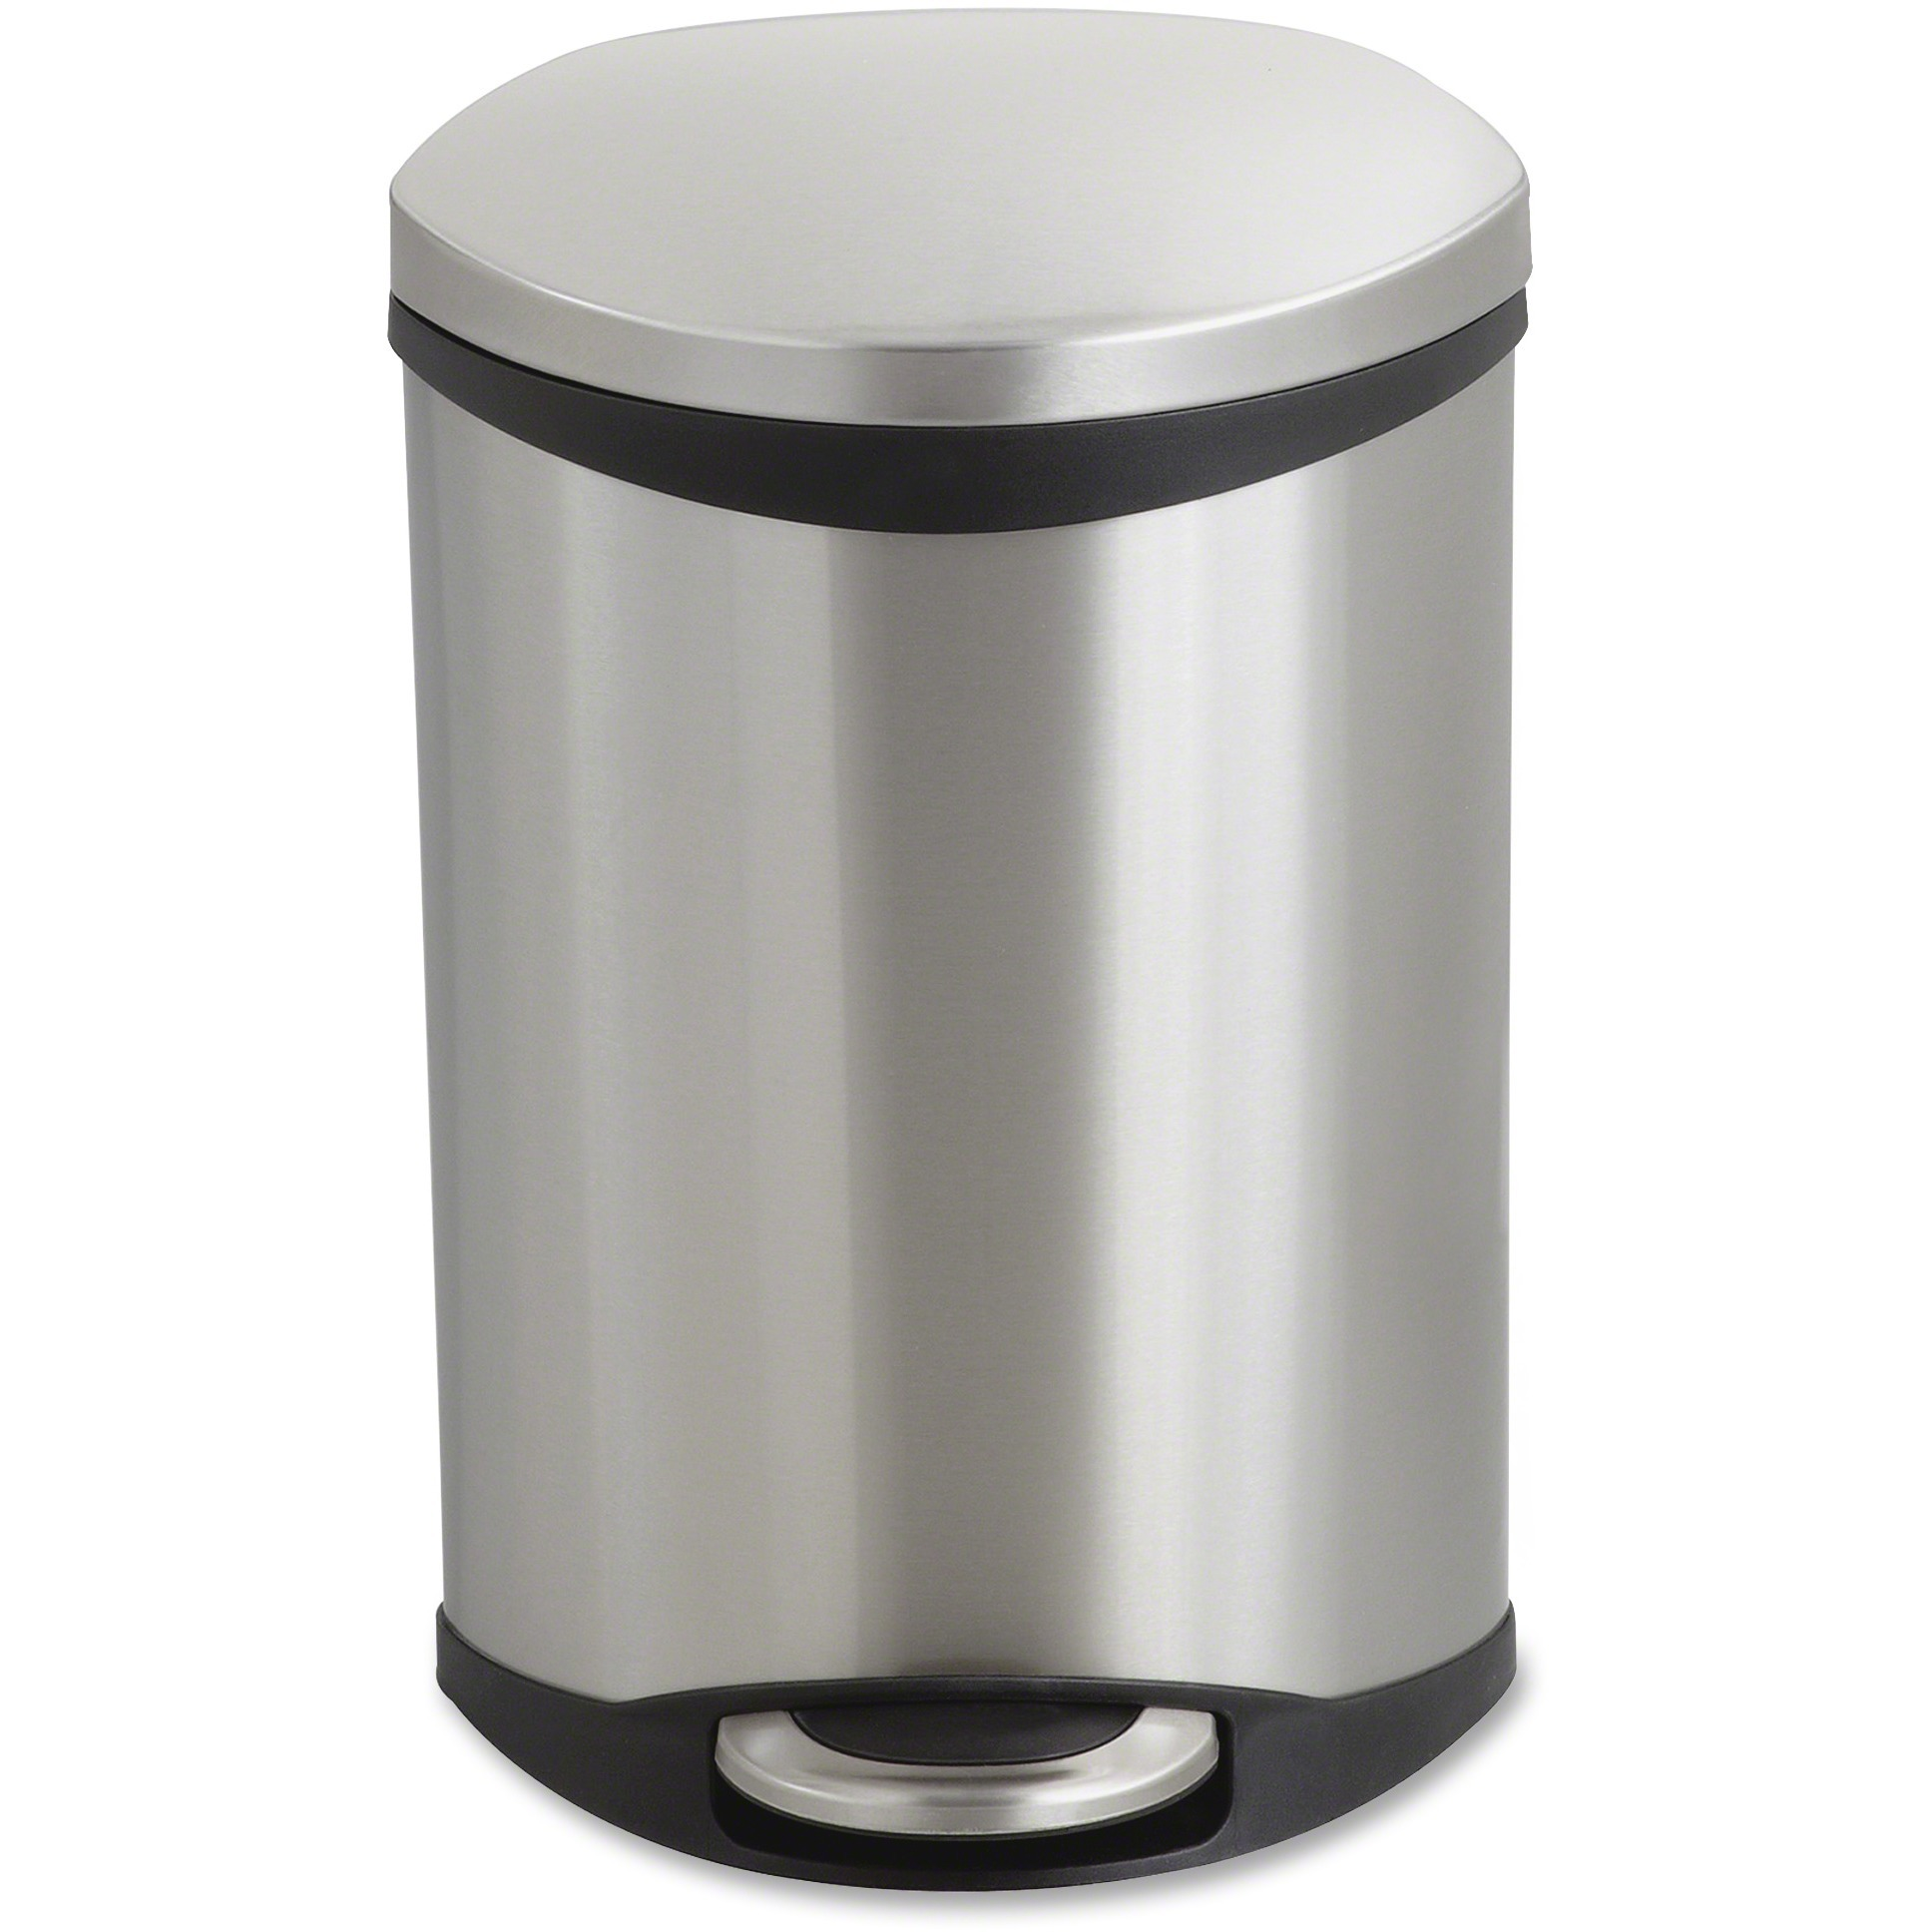 Step-On Medical Receptacle, 3gal, Stainless Steel